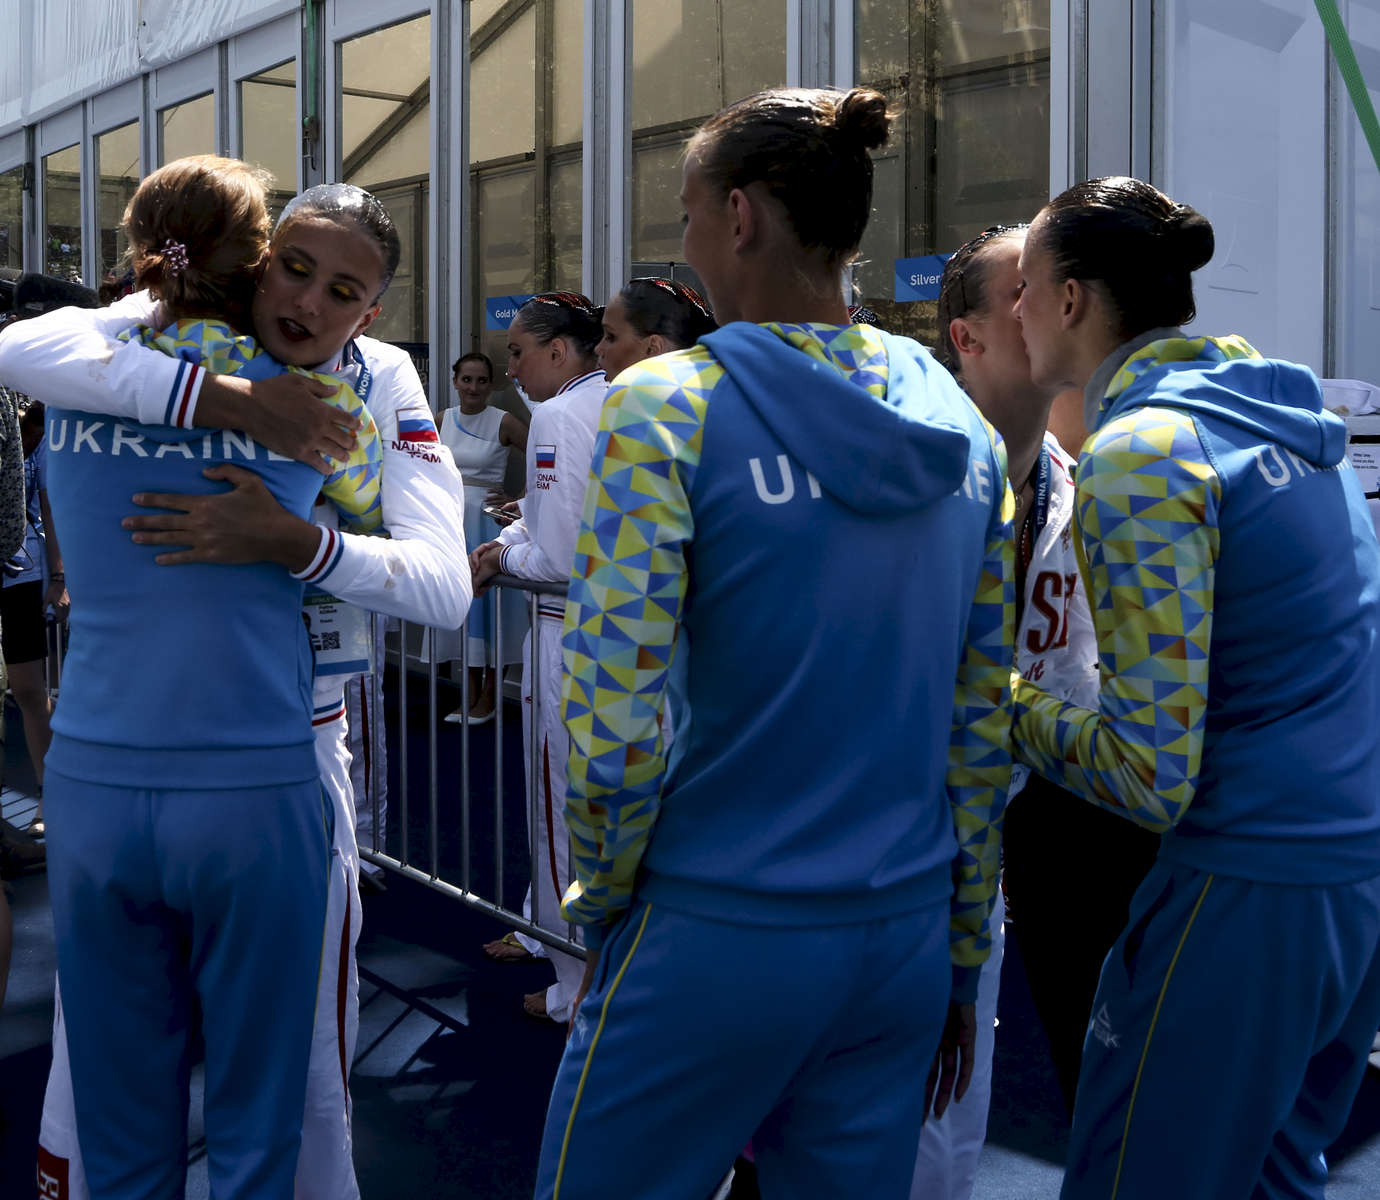 Members of the Russian and Ukrainian teams congratulate each other for their first and third places at the end of the Synchronised Swimming Team Free finals, during the FINA World championships in Budapest, Hungary on July 21, 2017.